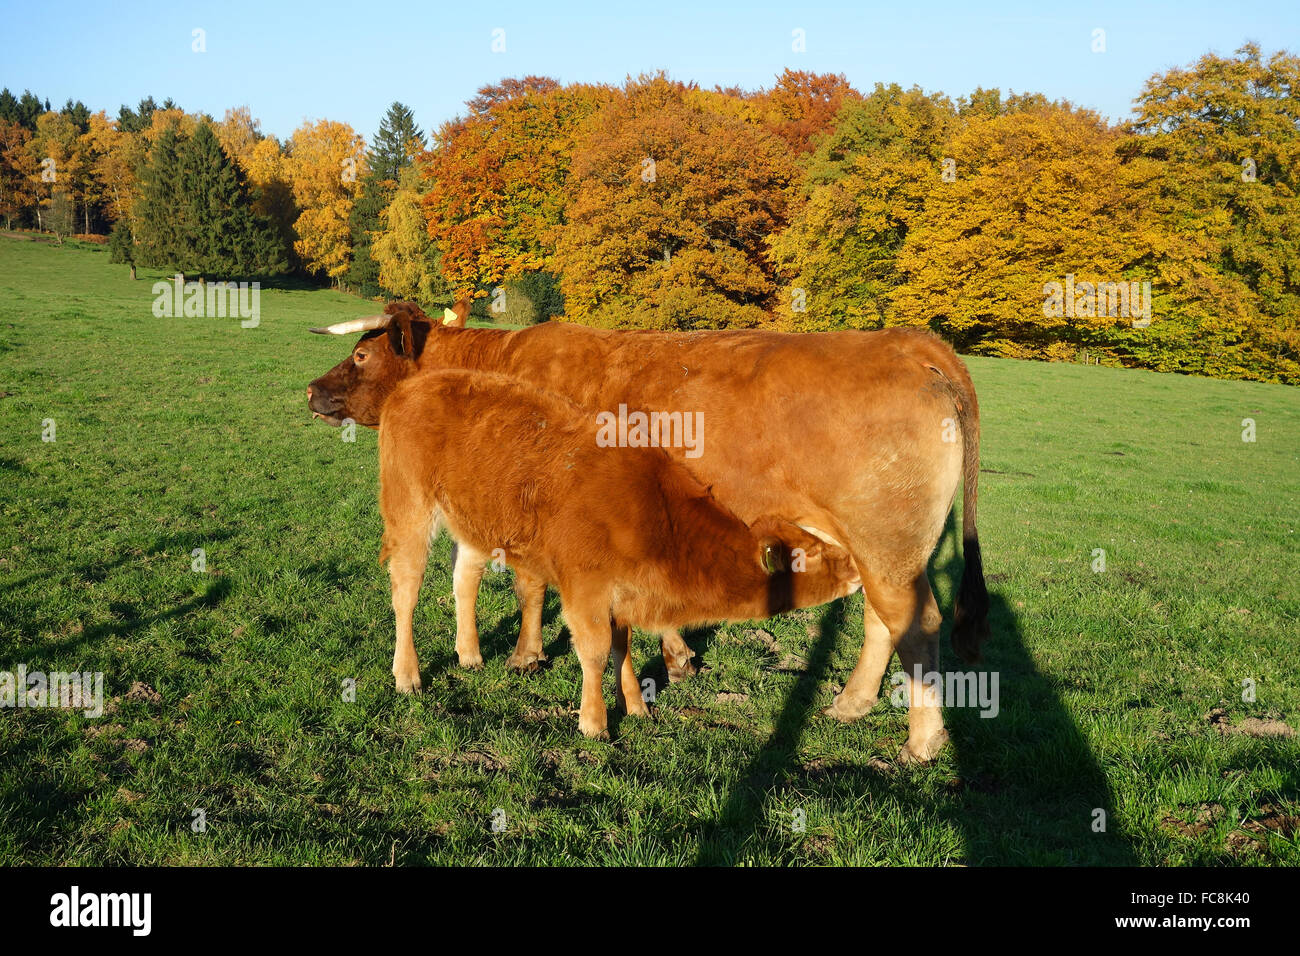 limousin cattle - Stock Image